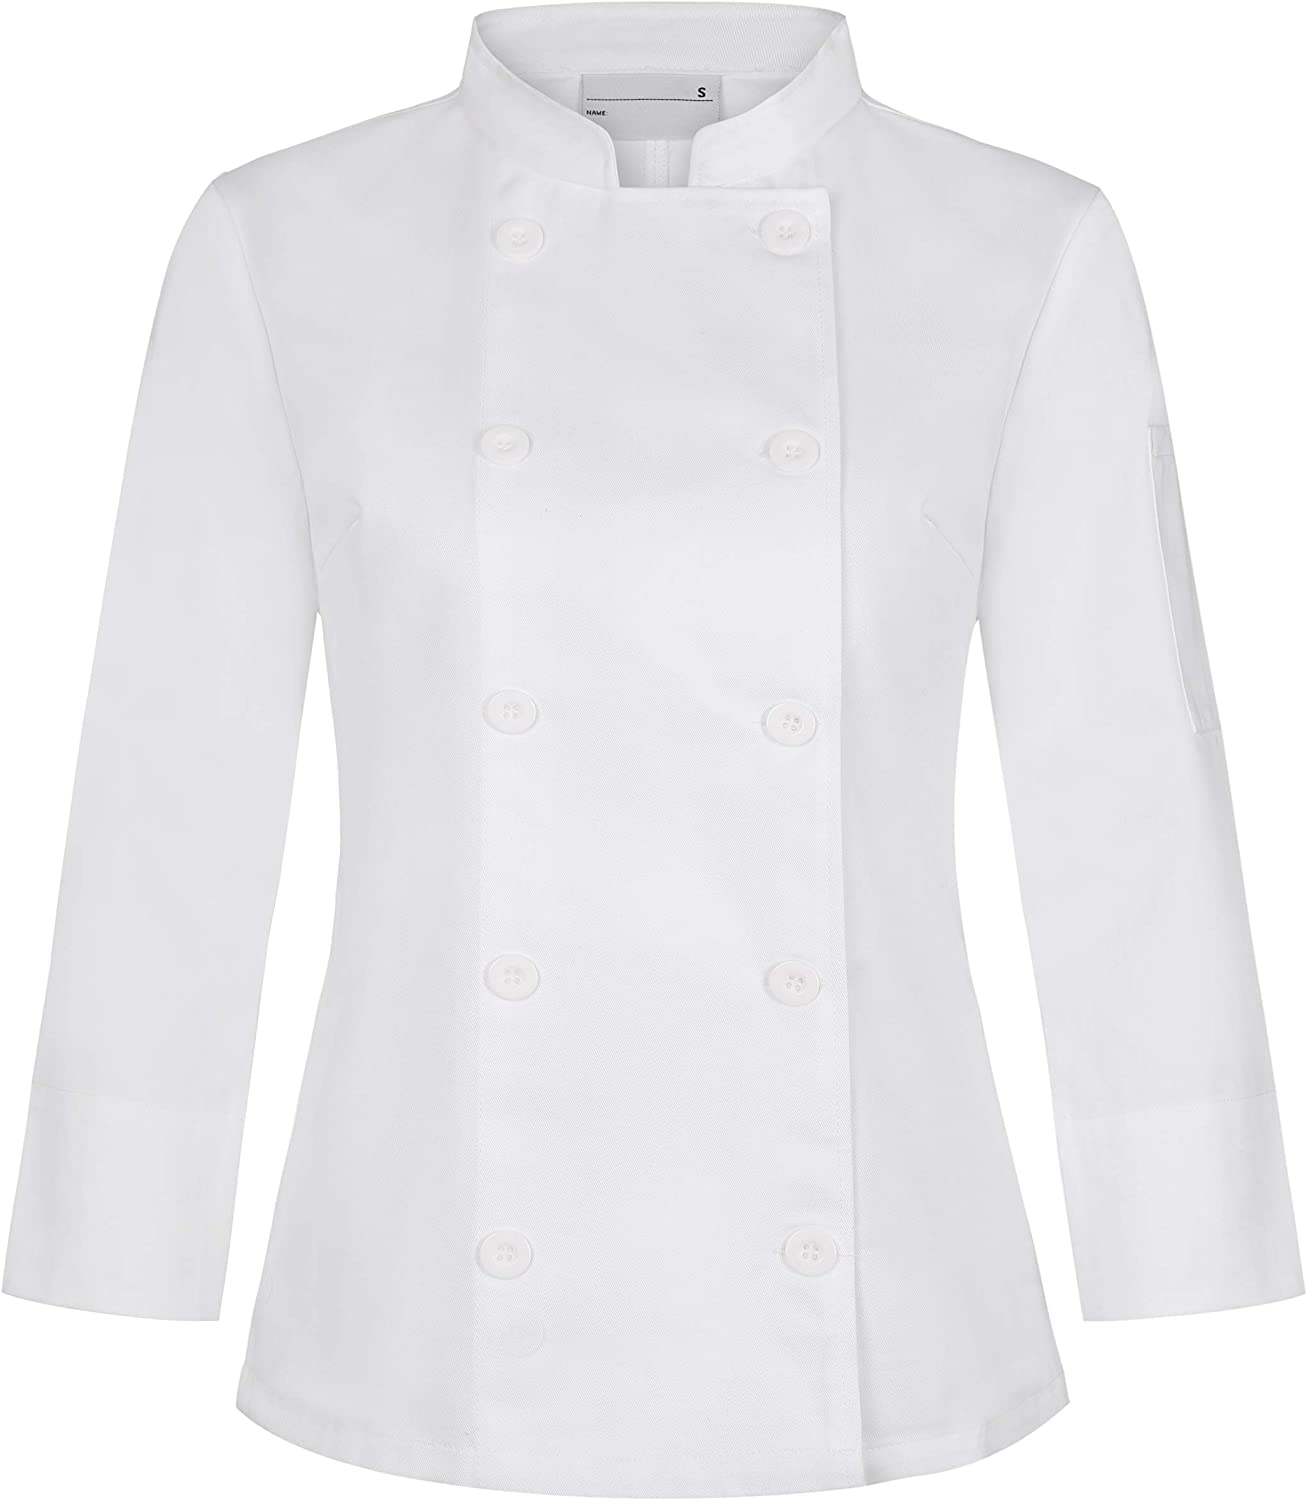 Chef Coat White Long Sleeve Chef Jackets Work Uniforms for Women